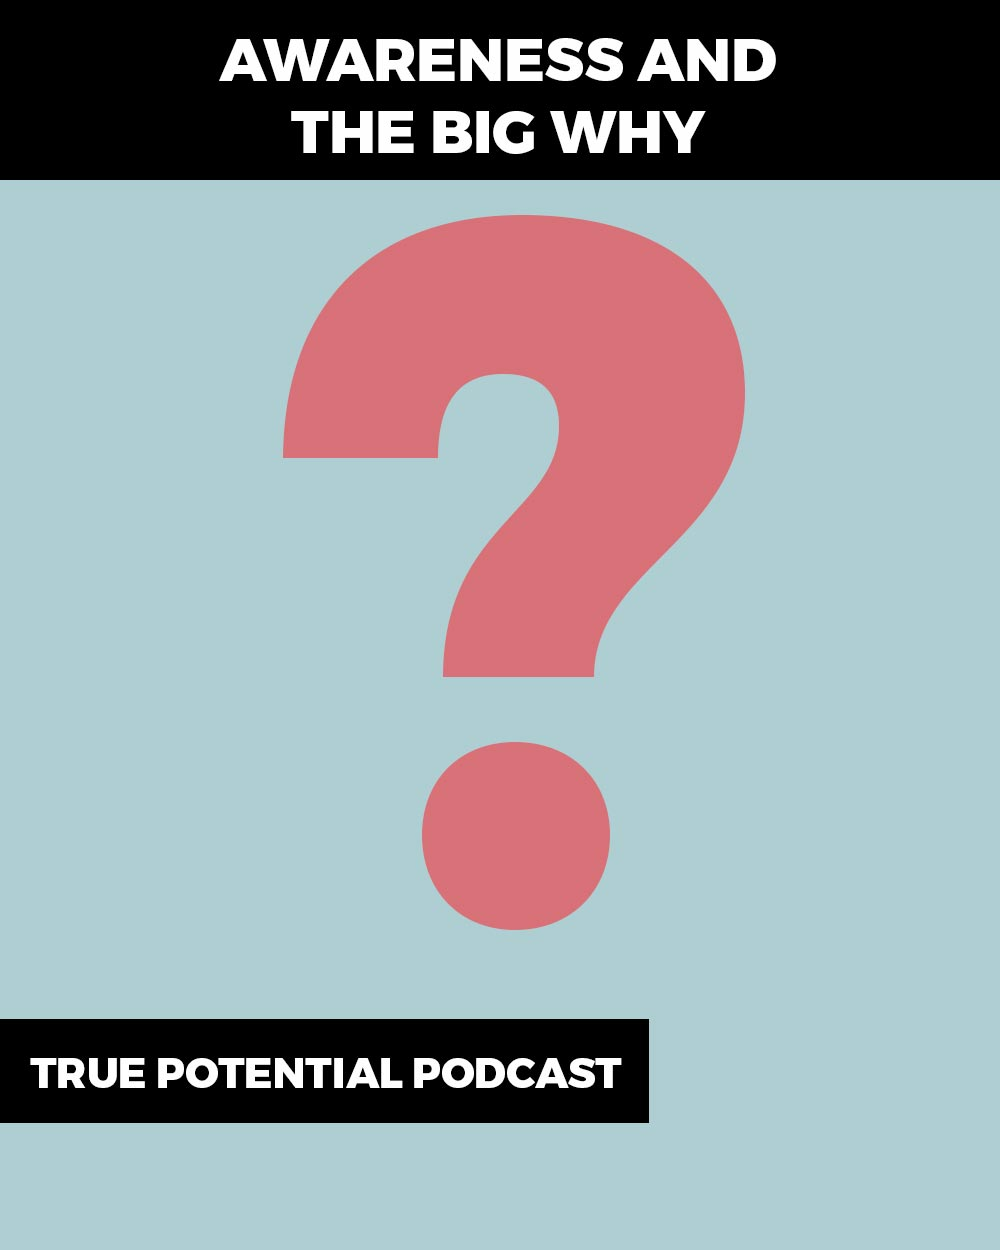 Awareness and the big why - how to find the purpose behind what you do - find your why